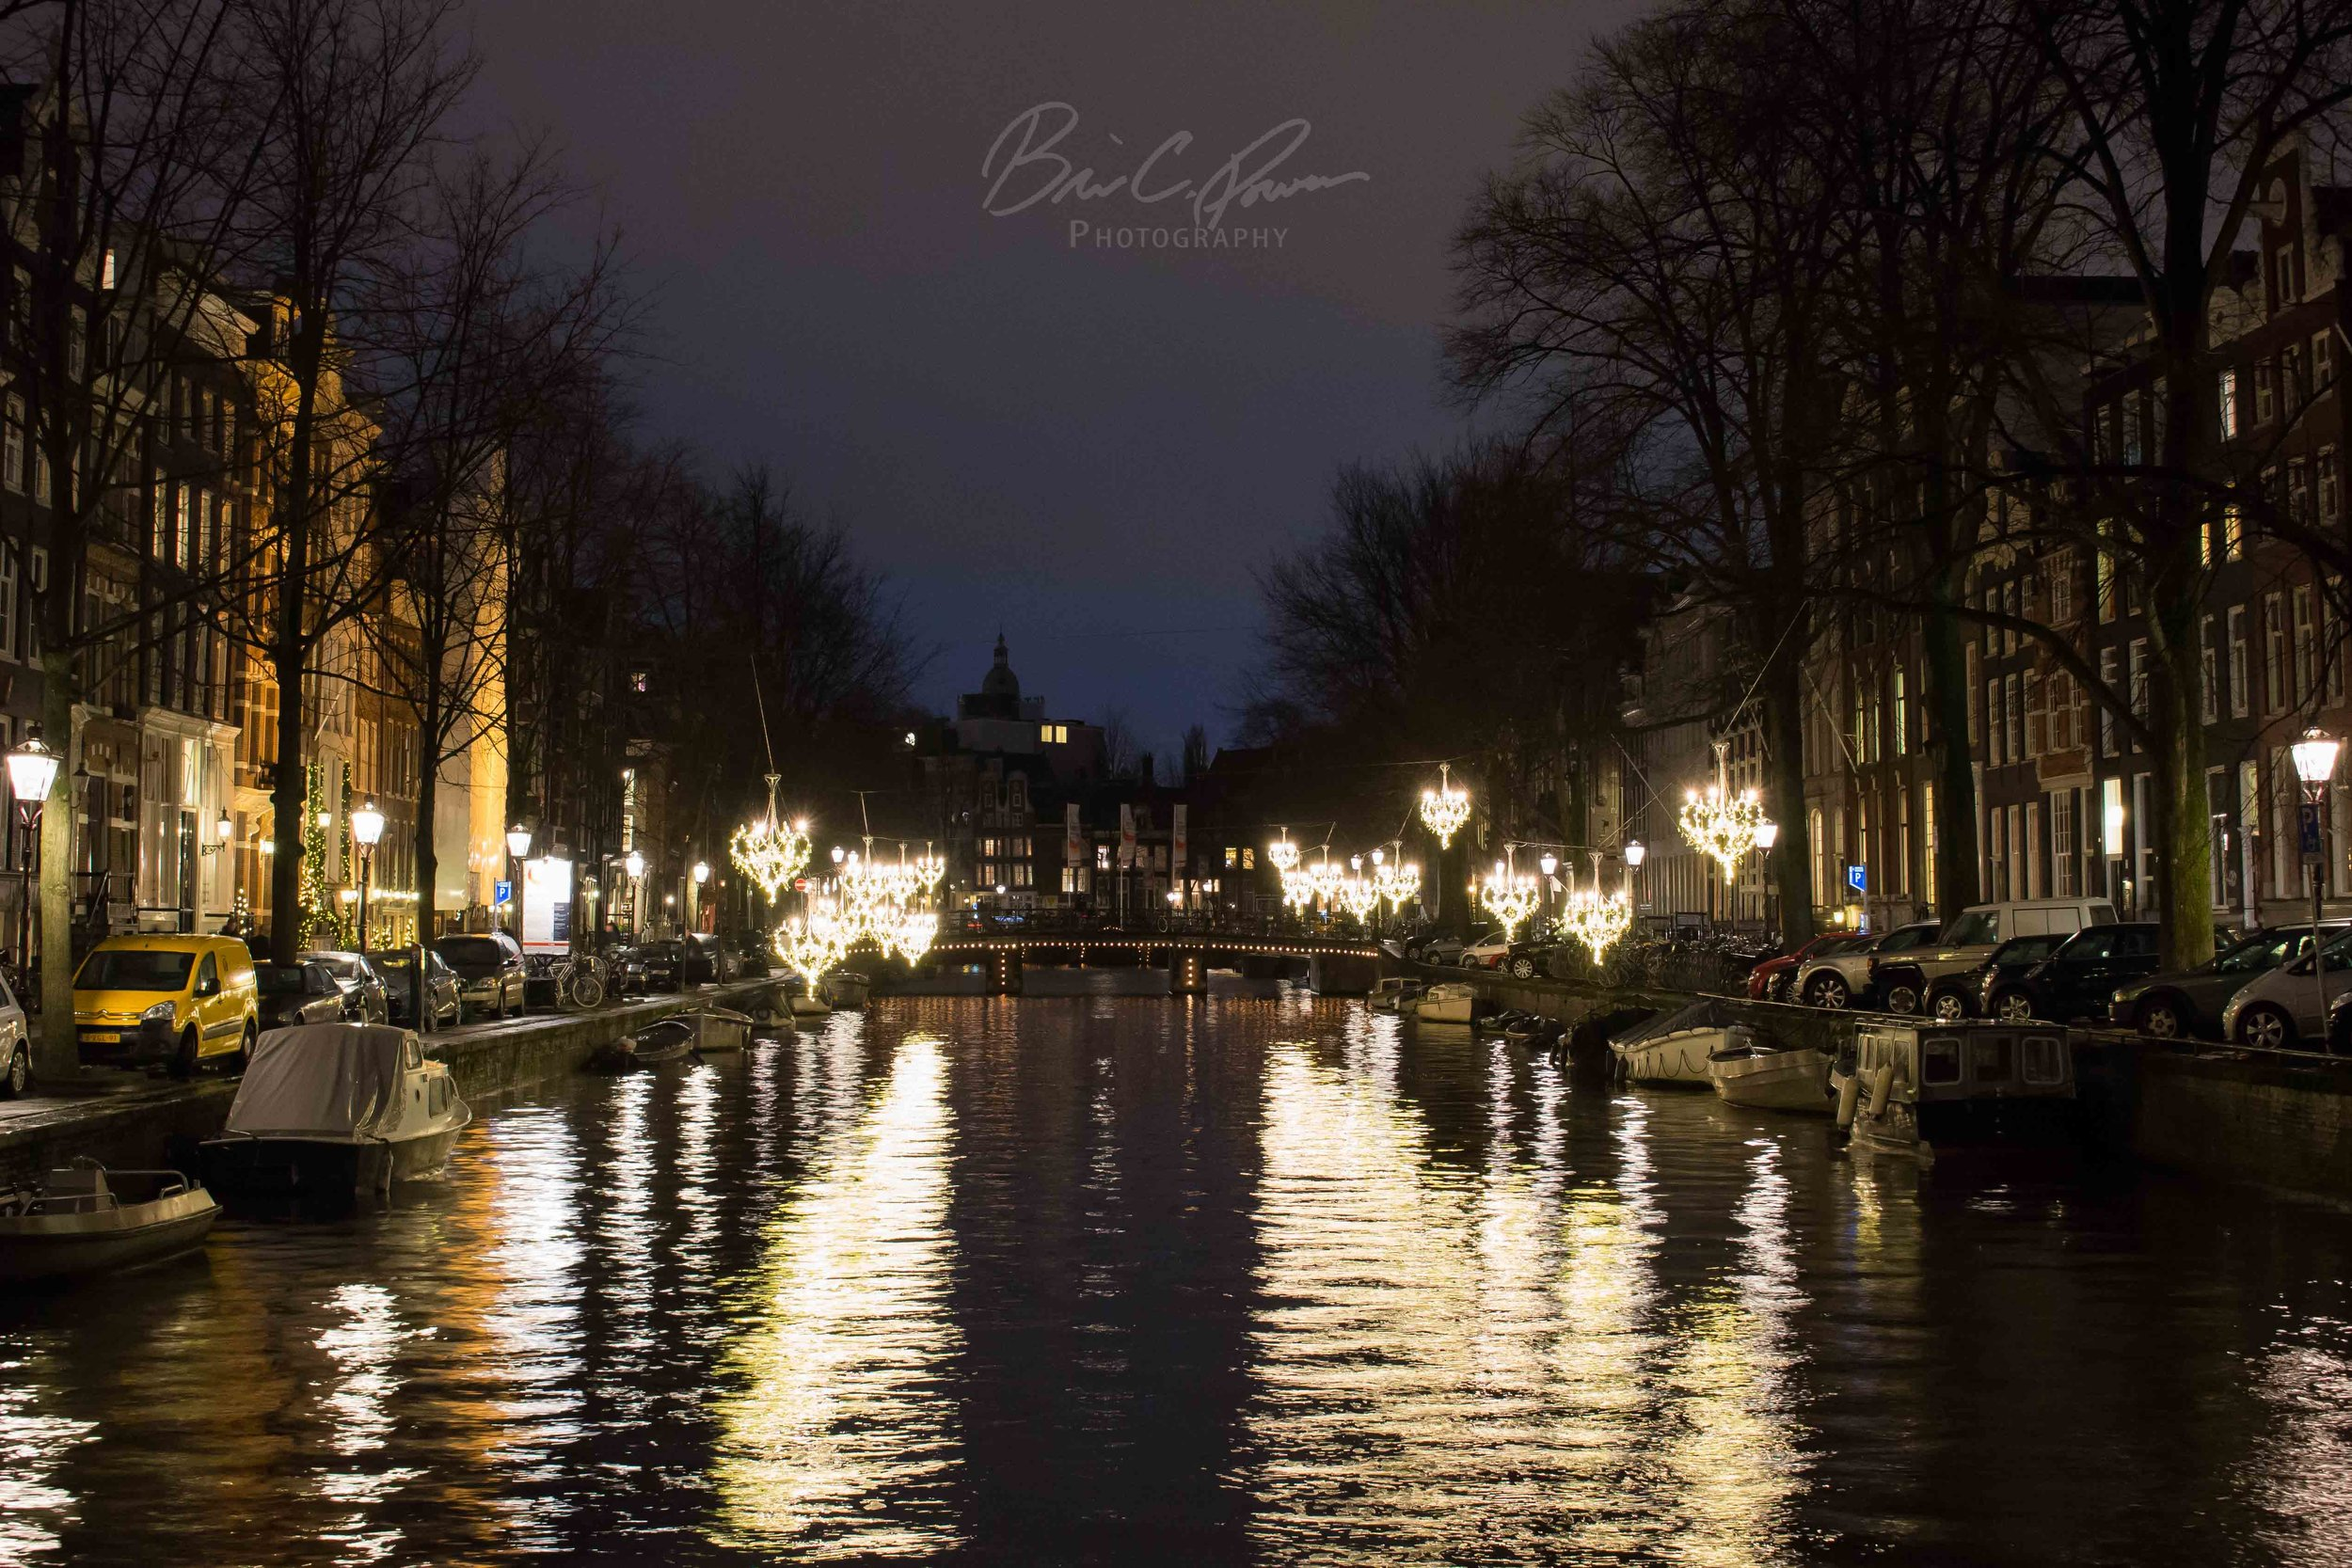 Evening on the canal. Amsterdam, The Netherlands.